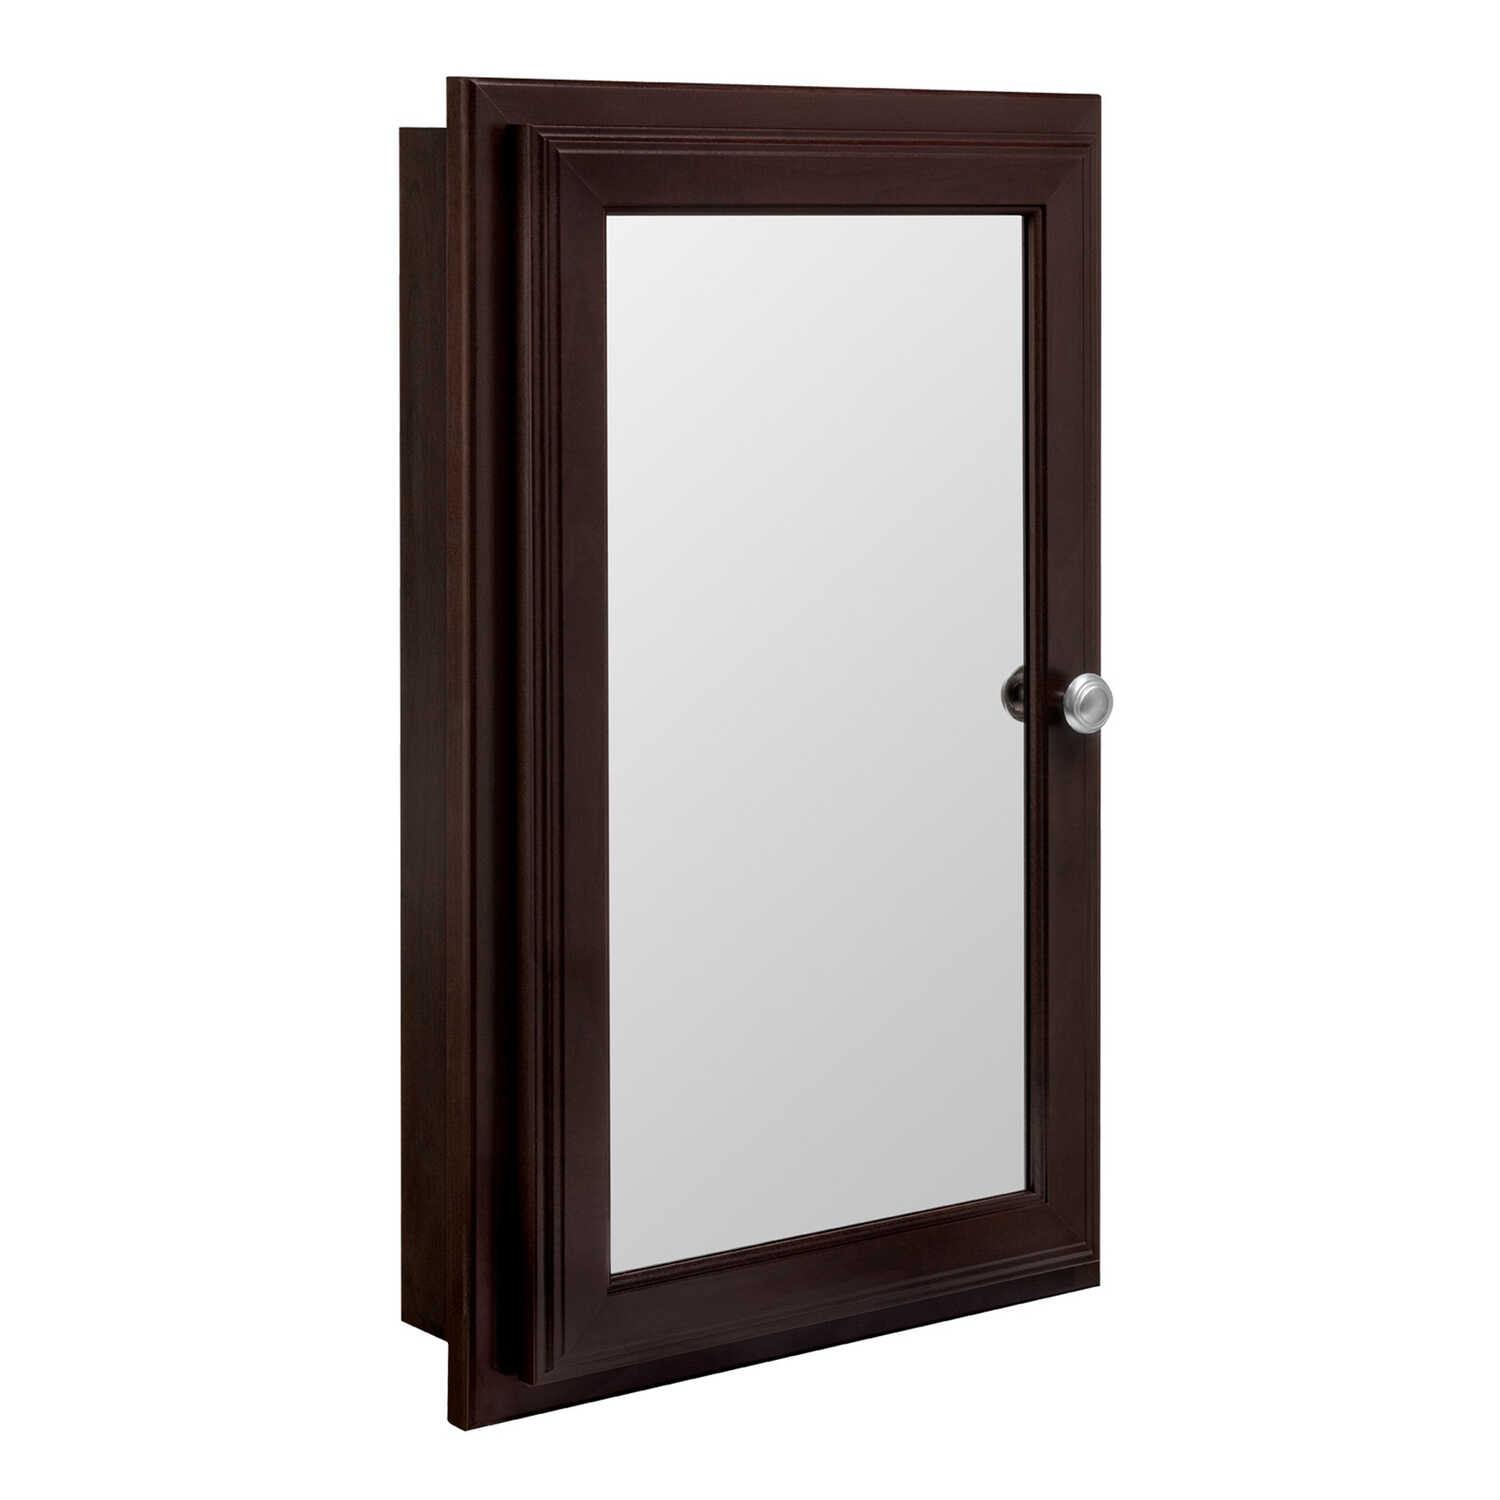 Continental Cabinets  25-3/4 in. H x 16 in. W x 4-3/4 in. D Rectangle  Medicine Cabinet/Mirror  Java